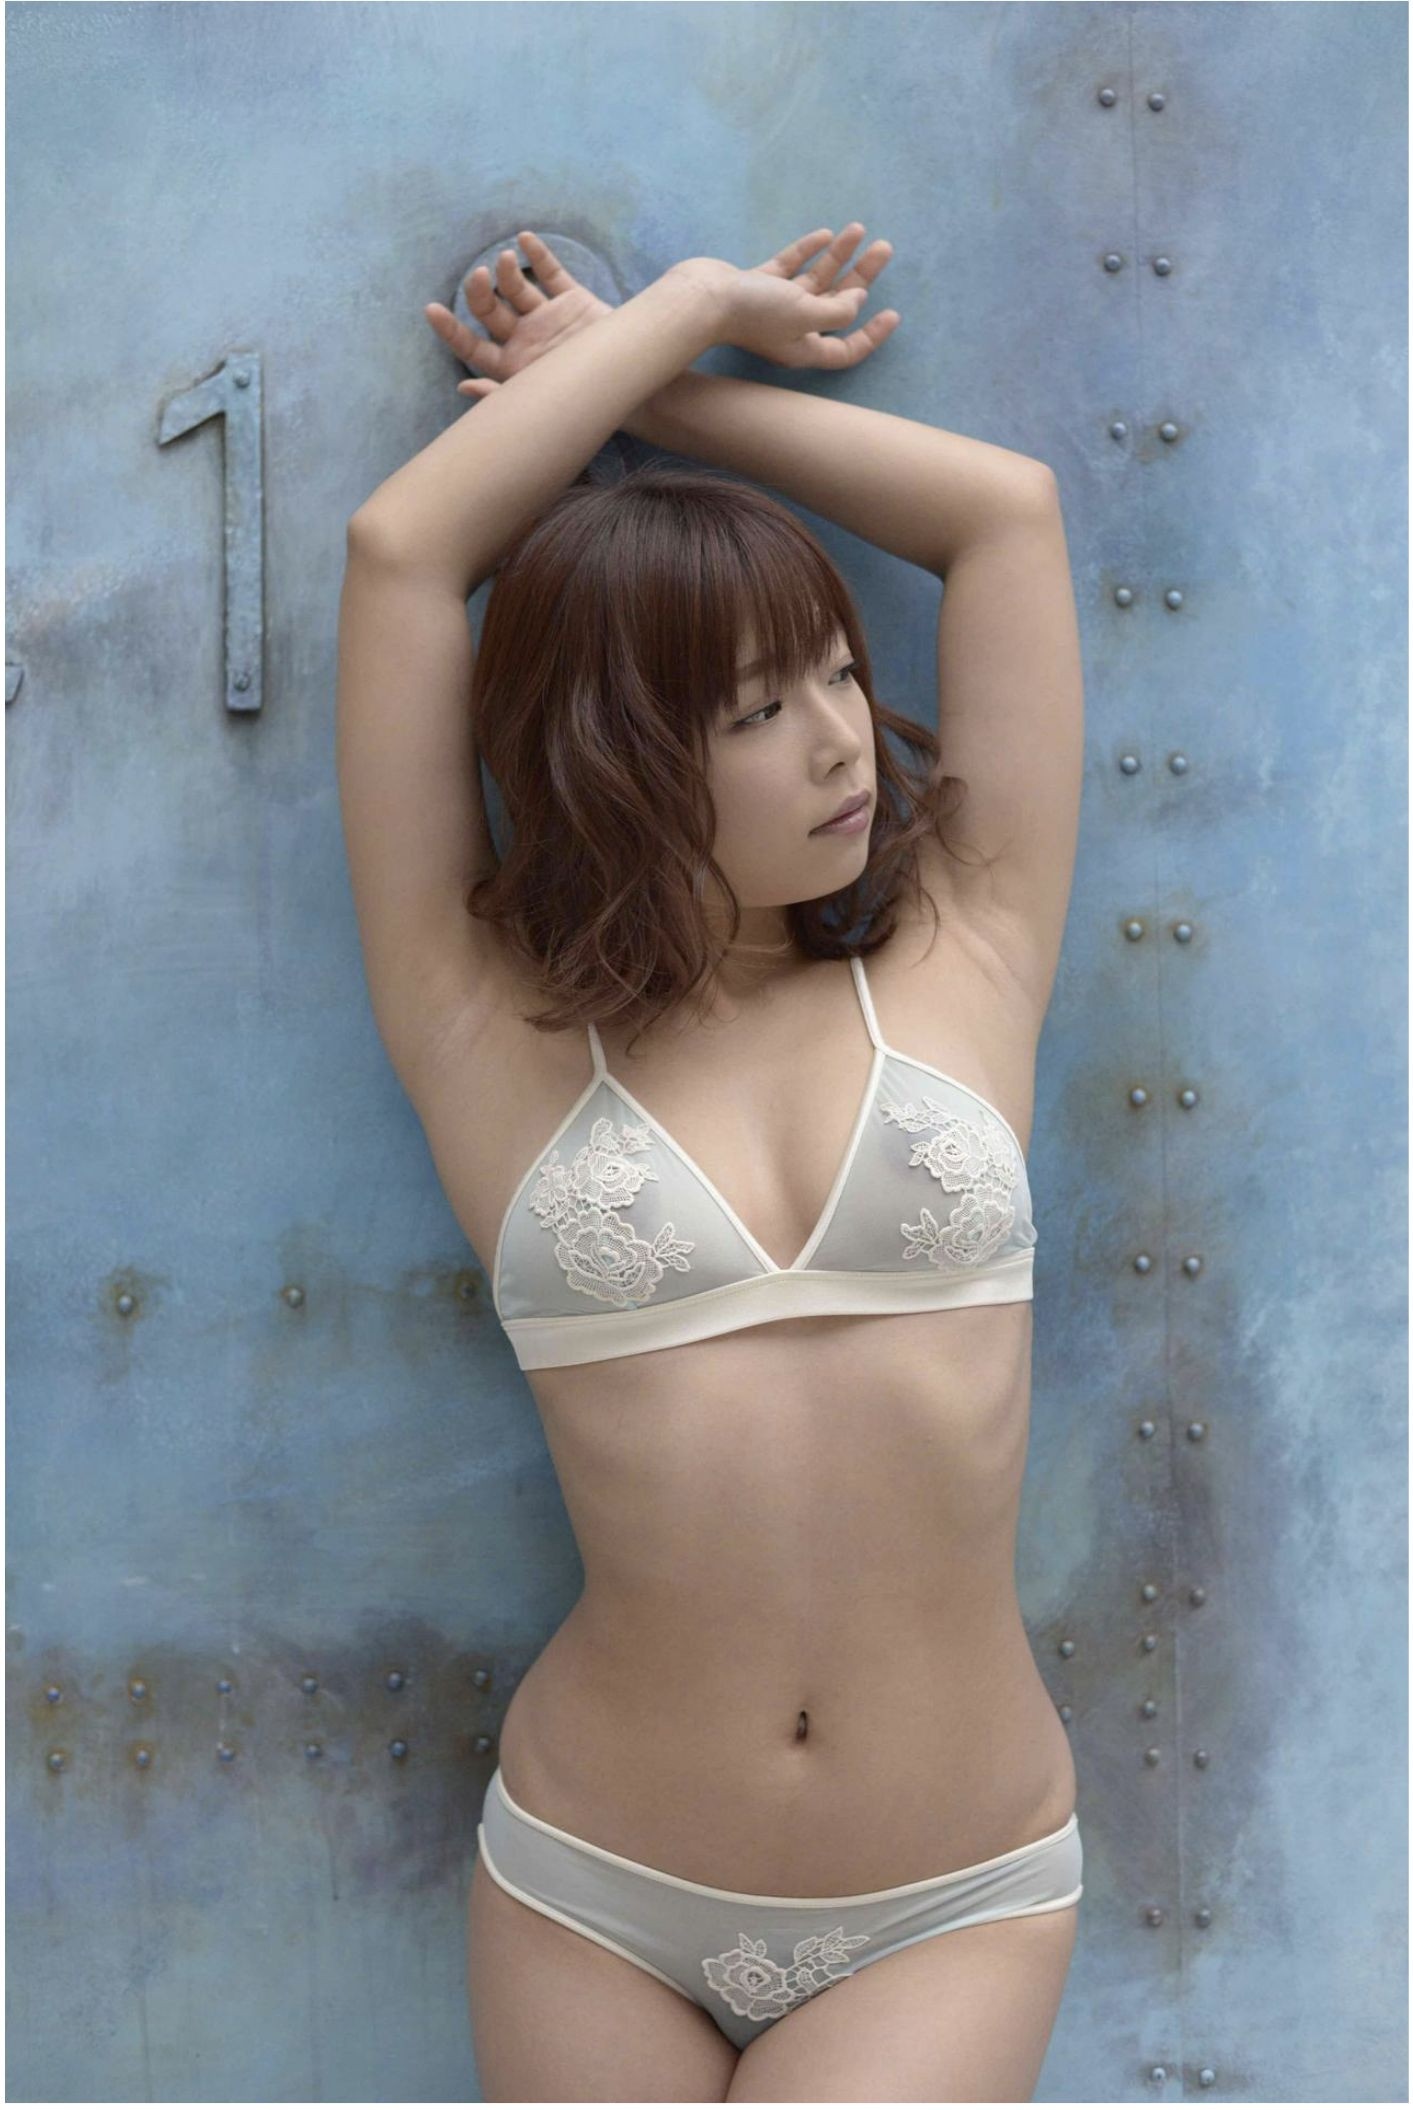 SOFT ON DEMAND GRAVURE COLLECTION 紗倉まな04 photo 055